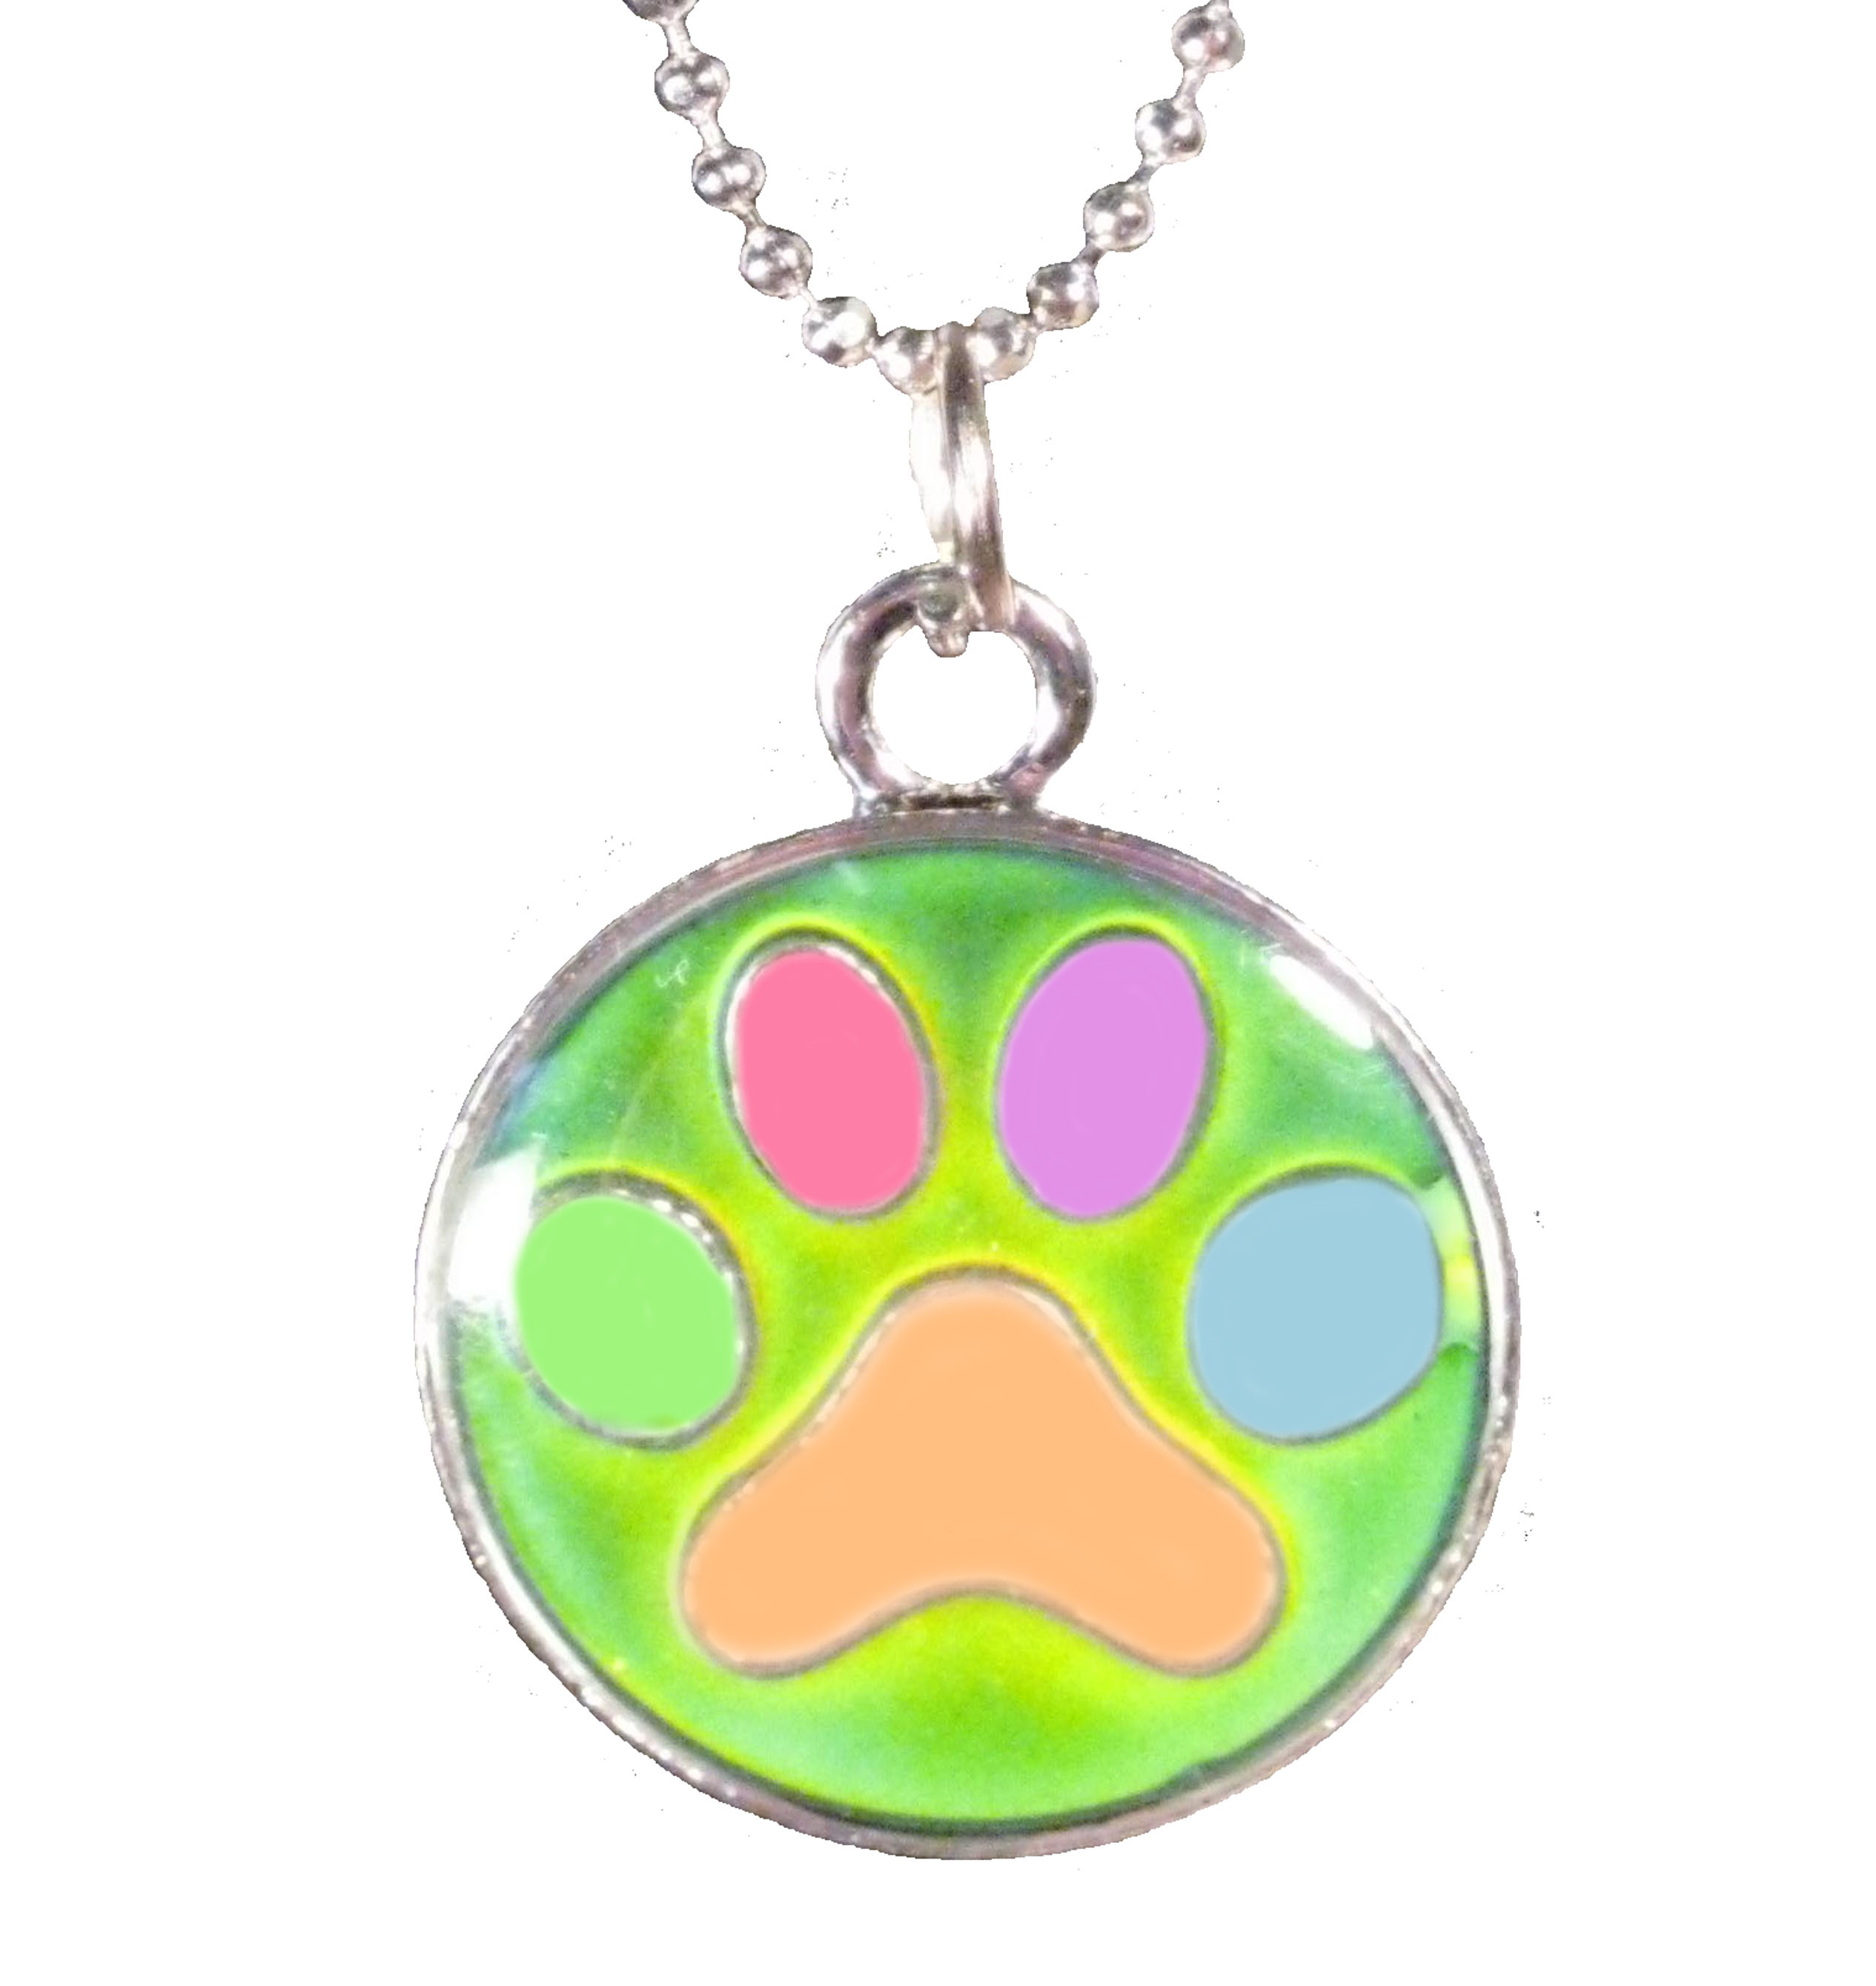 Paw Print Mood Necklace